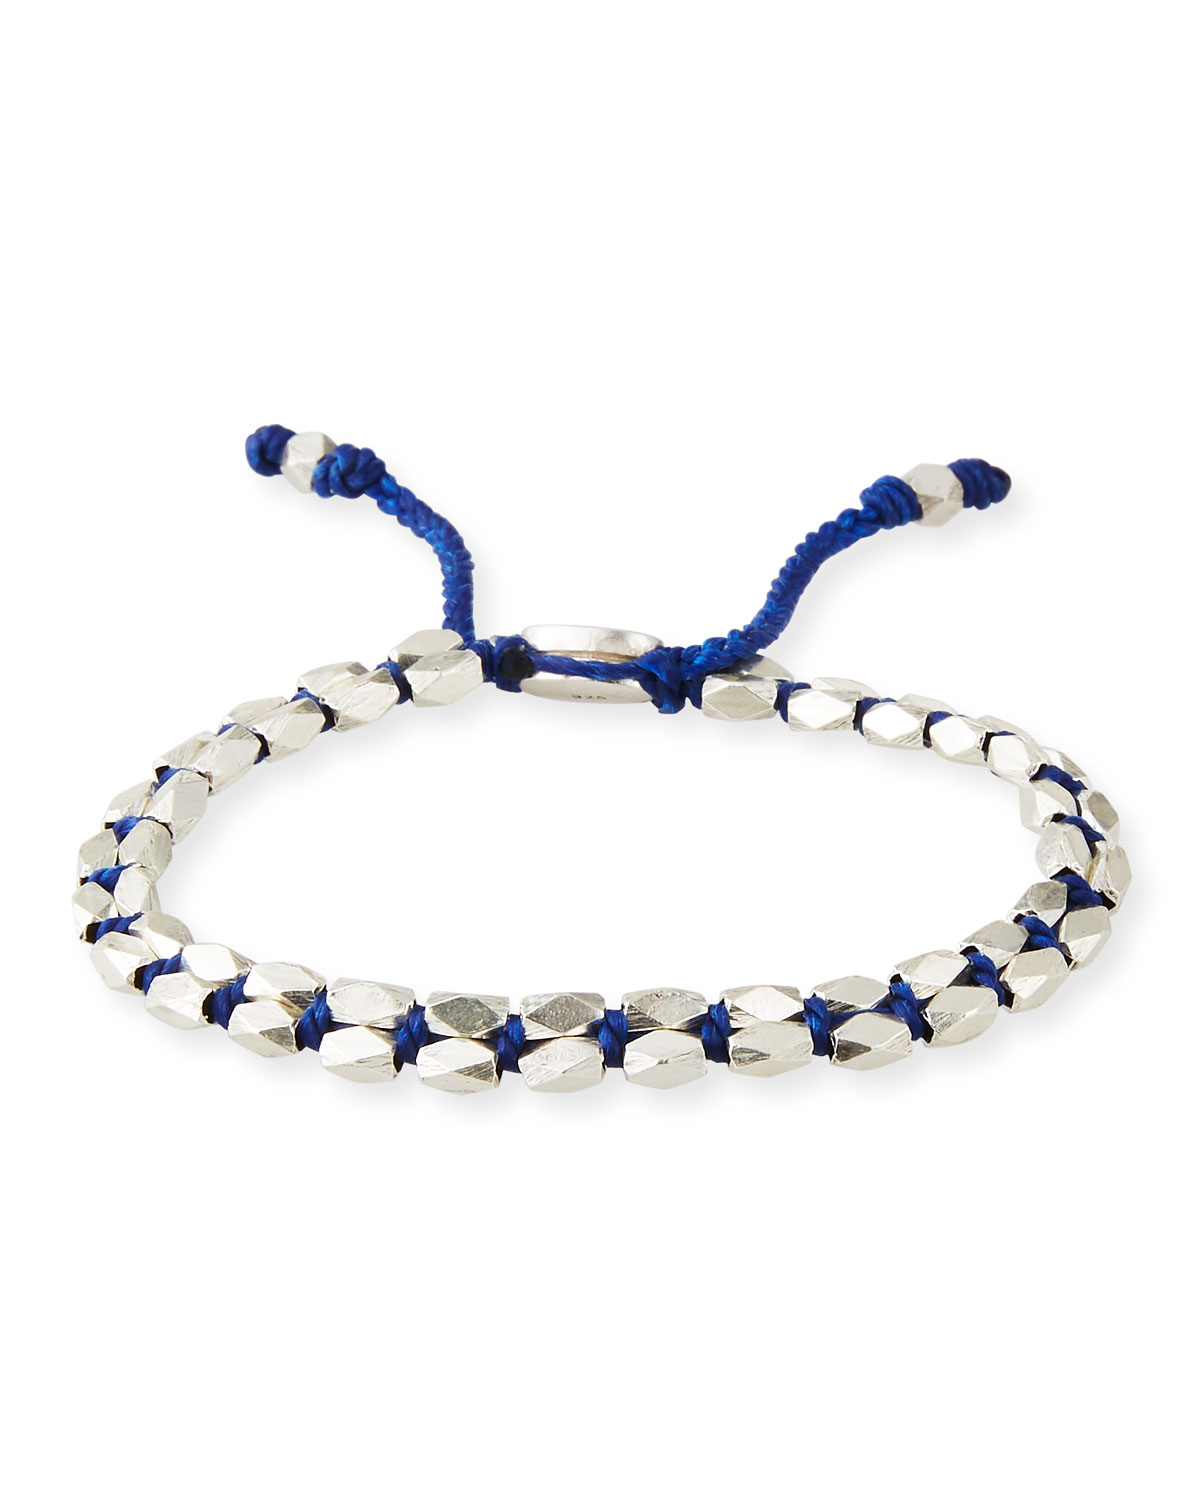 M. Cohen Men's Sterling Silver Bead Bracelet, Blue